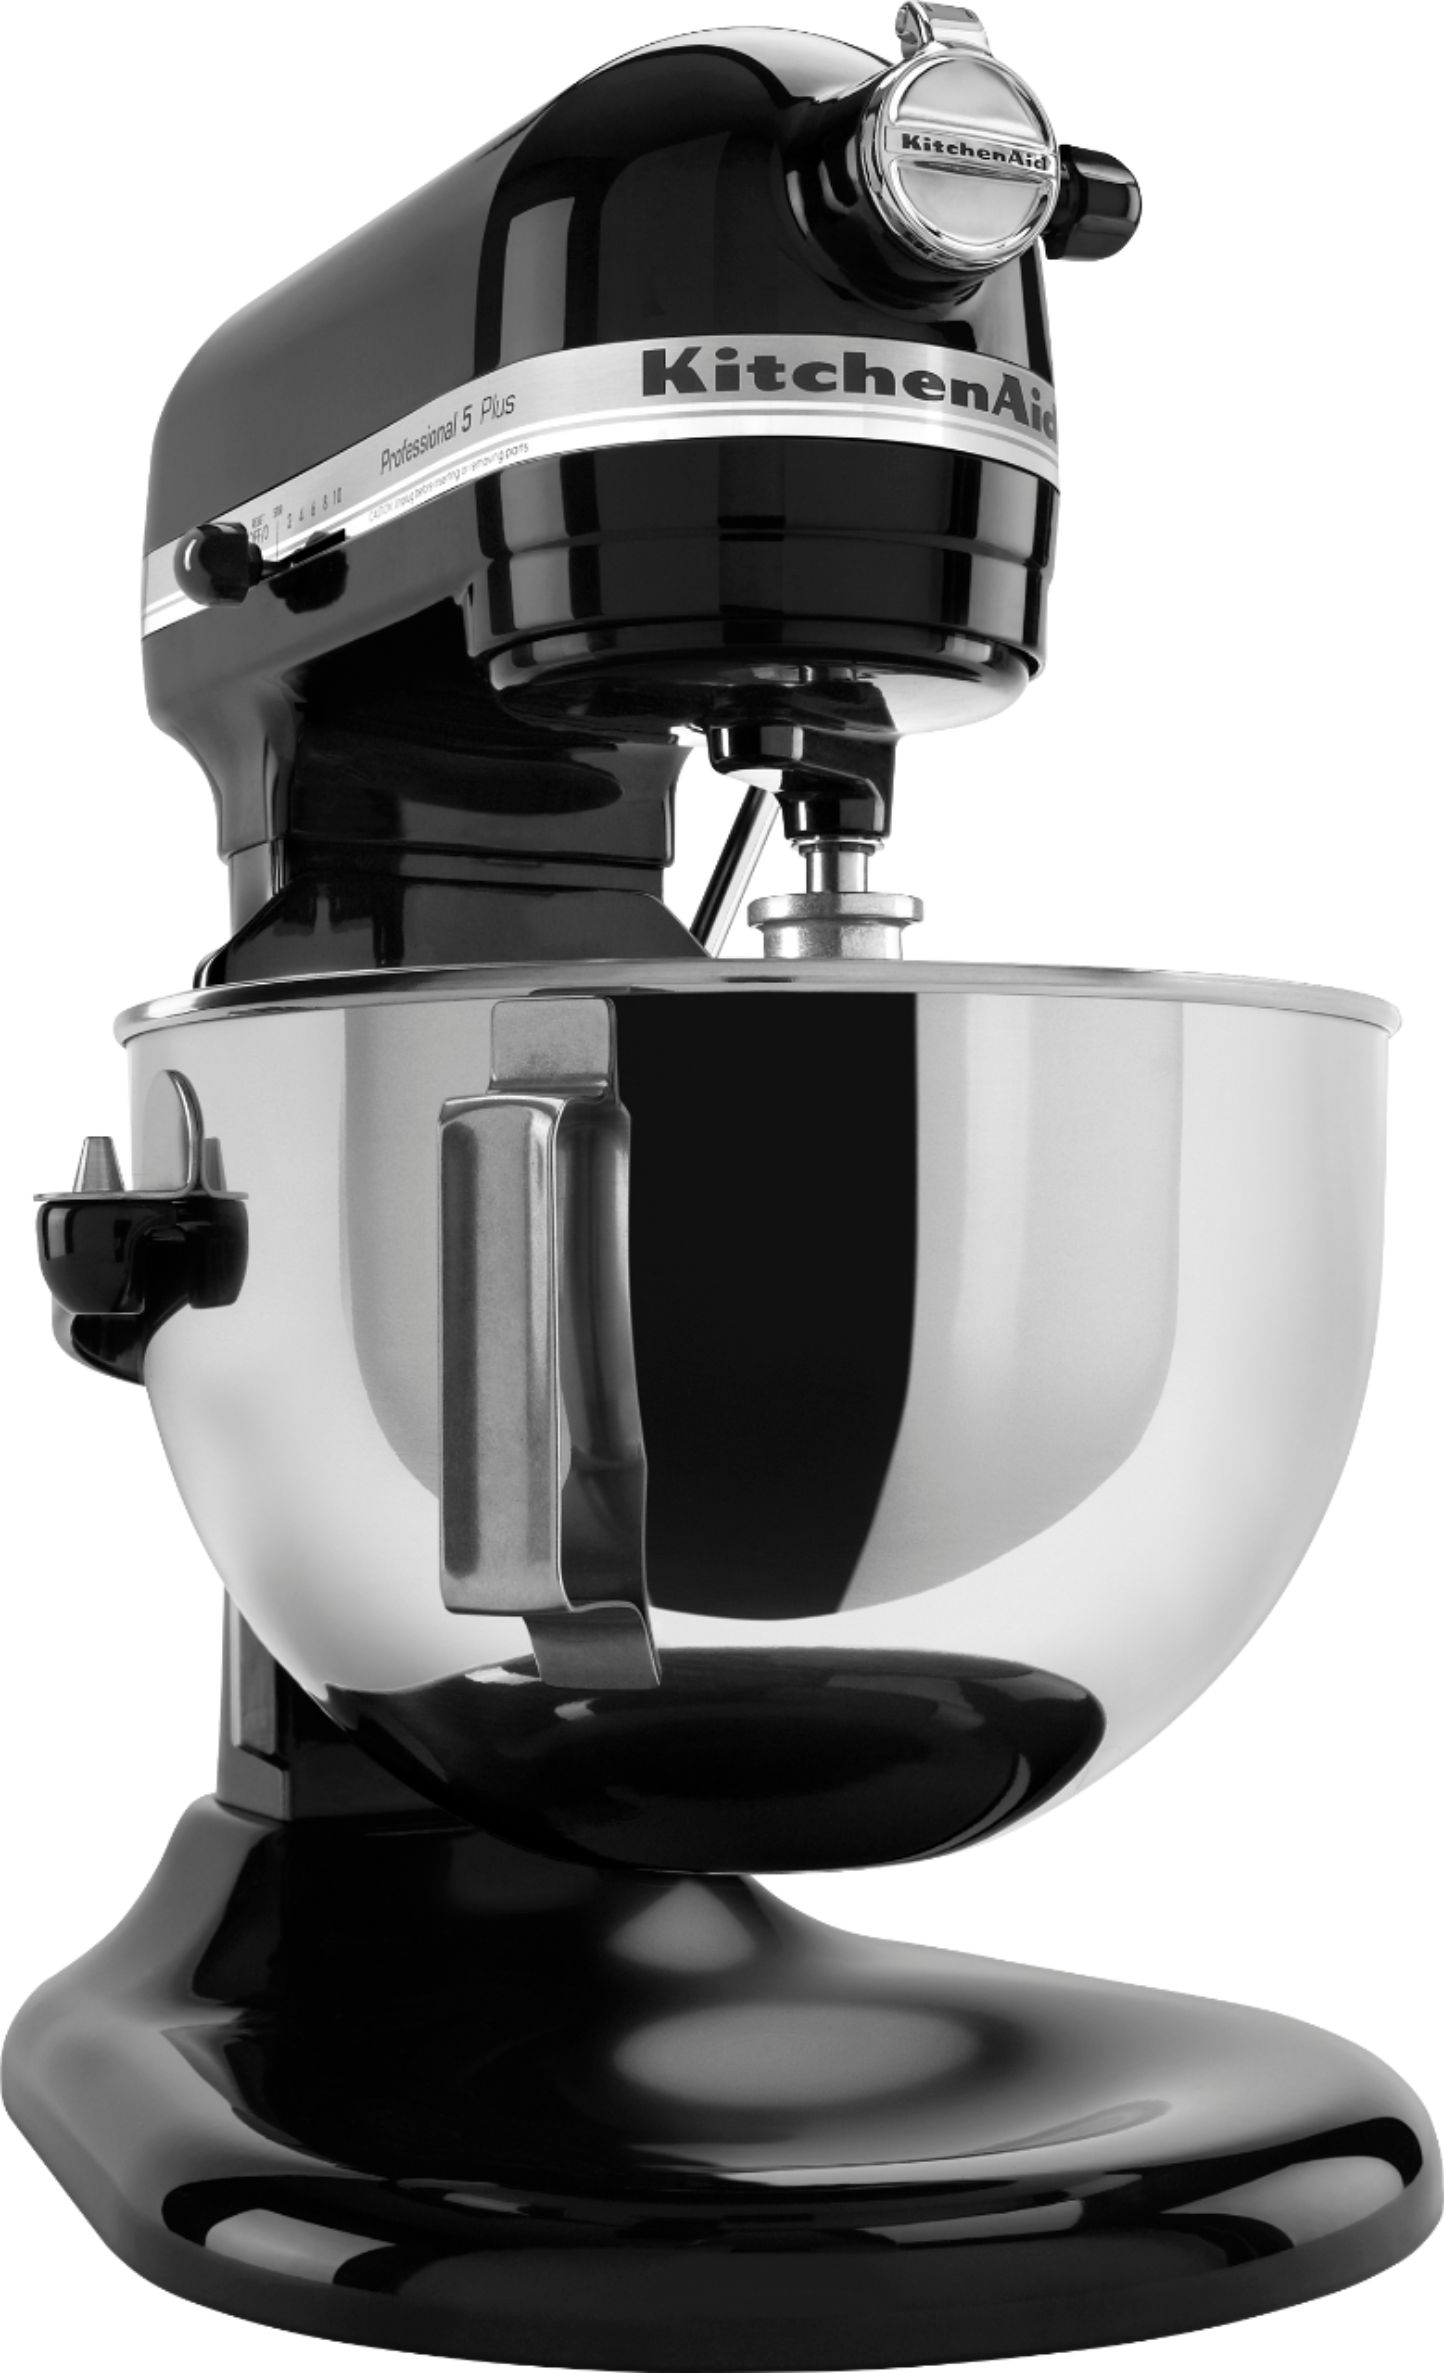 KitchenAid - Professional 5 Plus Series Stand Mixer - Onyx Black - Angle Zoom